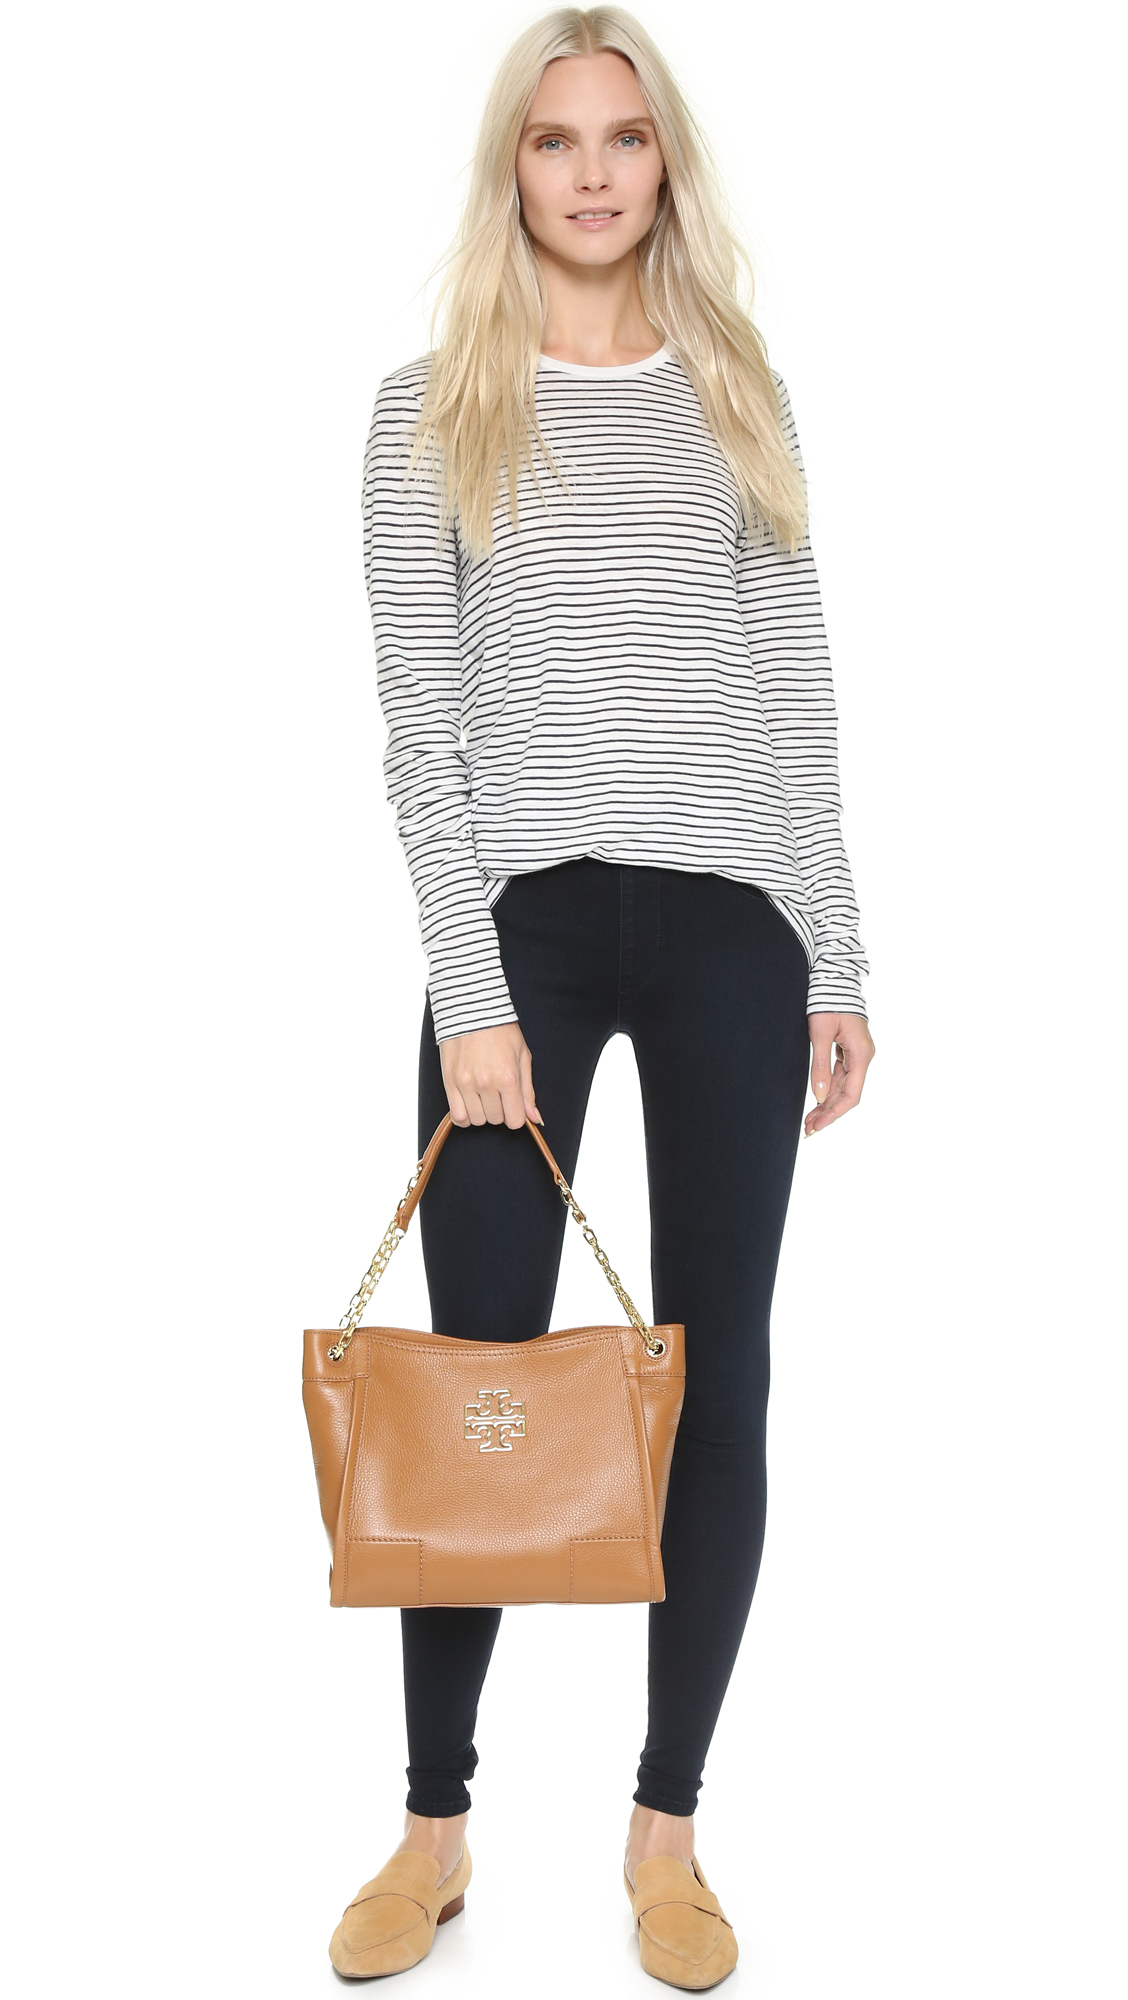 53444a53a131 Tory Burch Britten Small Slouchy Tote